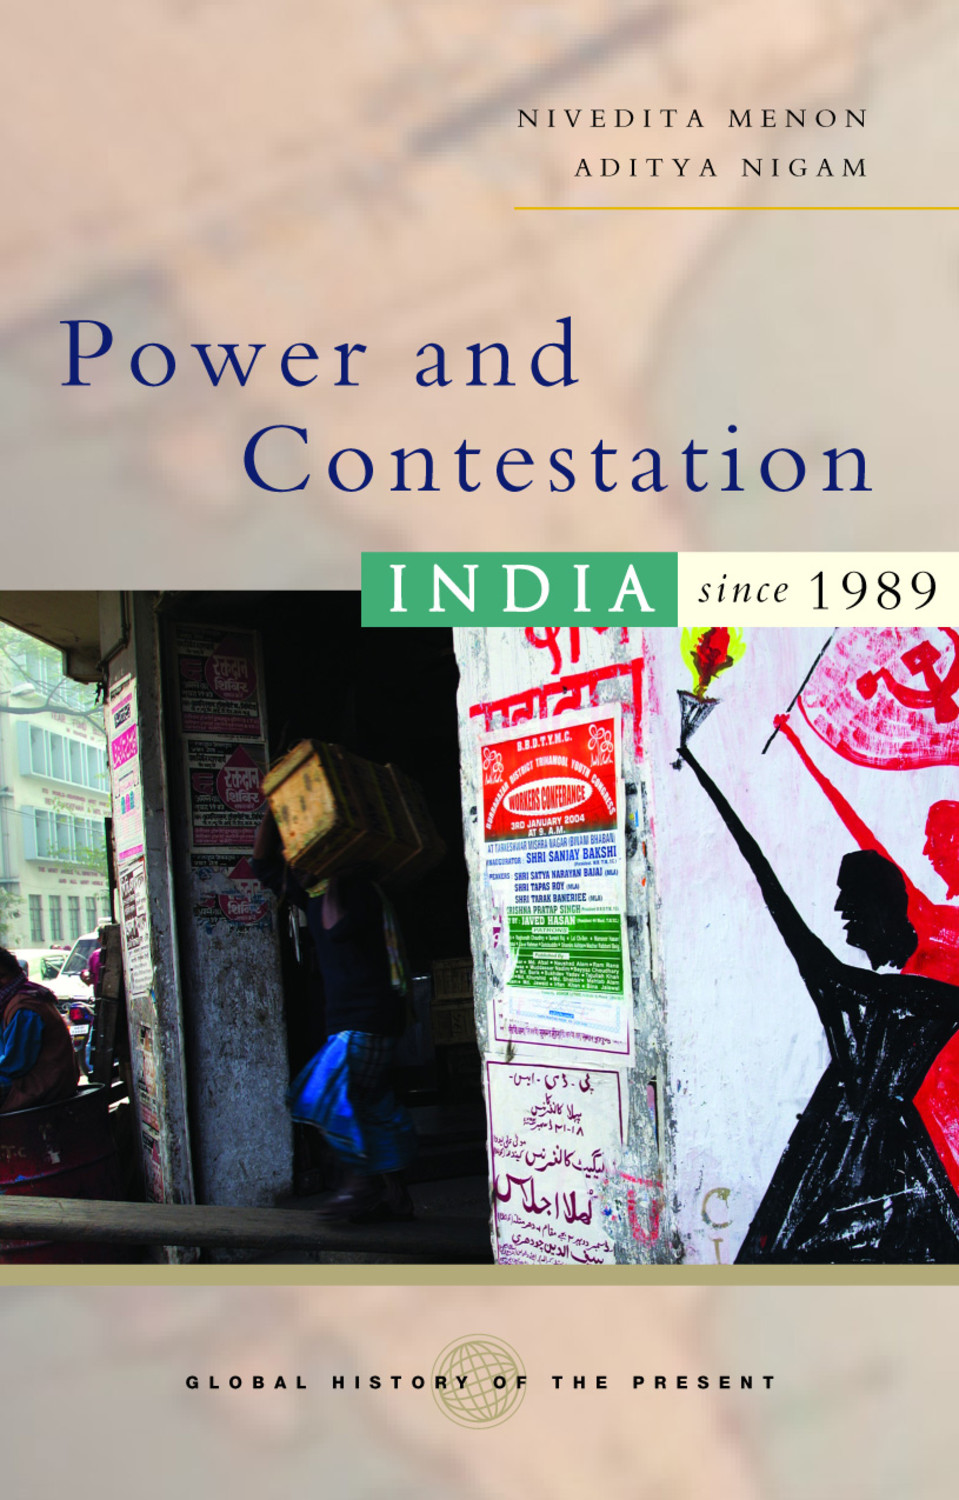 https://www.zedbooks.net/shop/book/power-and-contestation/